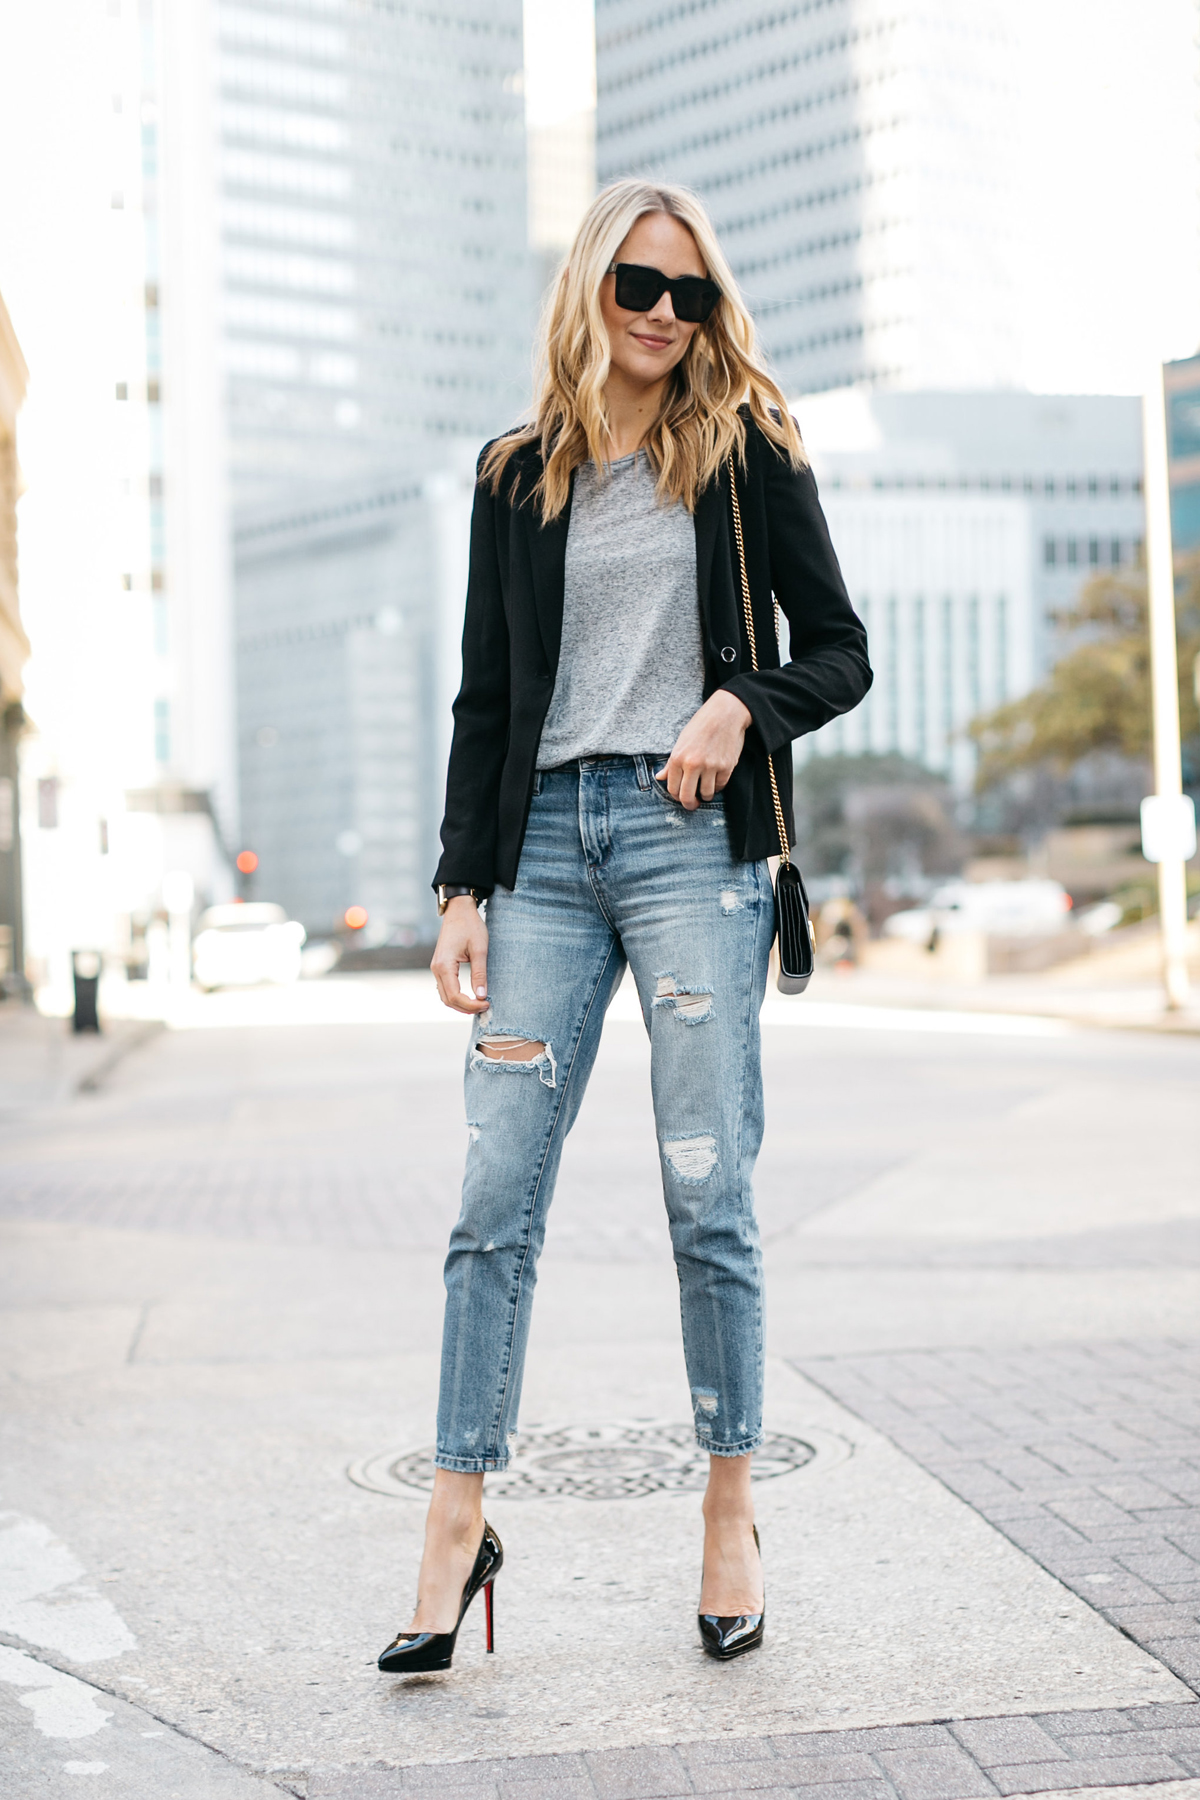 Street Style, Black Blazer, Grey Tshirt, Denim Ripped Mom Jeans, Black Christian Louboutin Pumps, Gucci Marmont Handbag, Black Celine Sunglasses, Spring Outfit